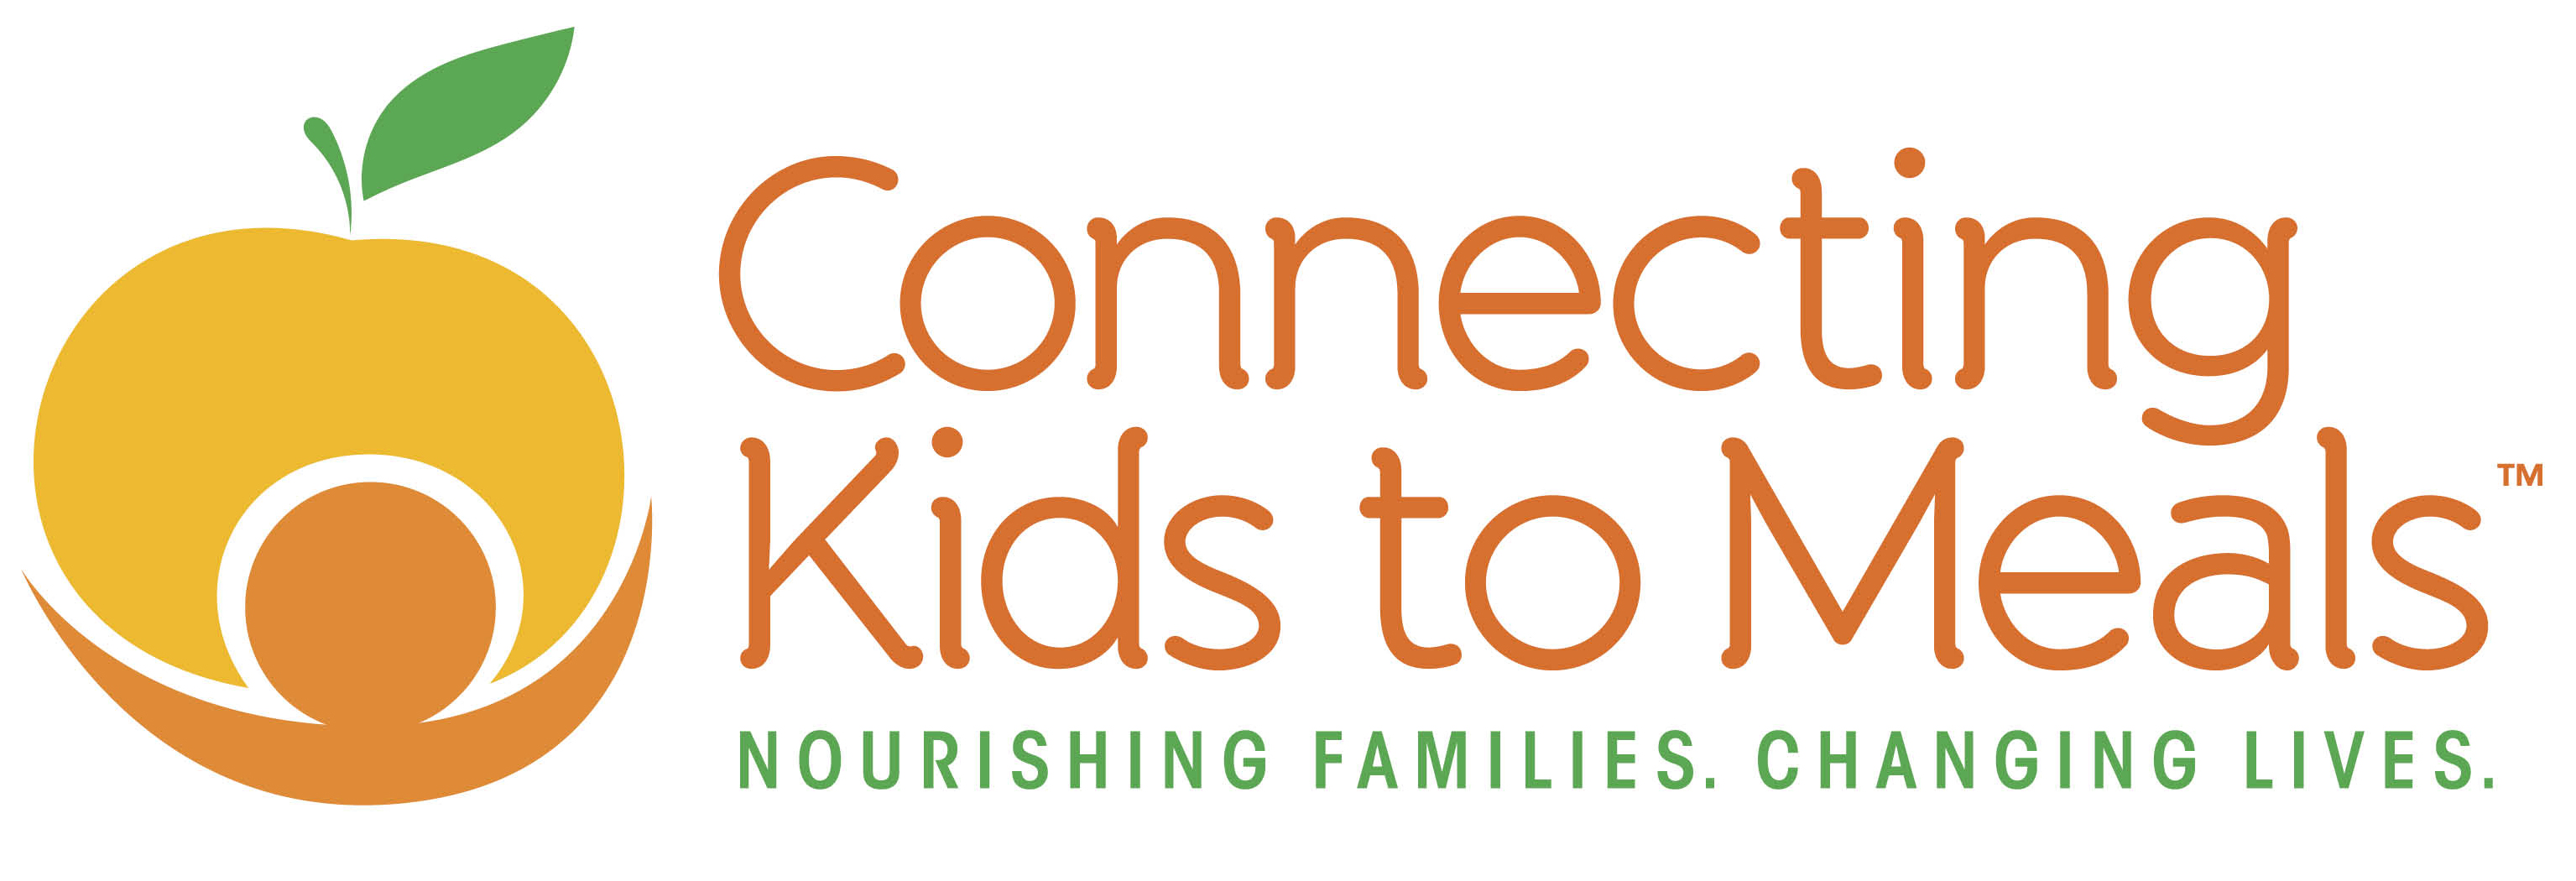 Connecting Kids to Meals